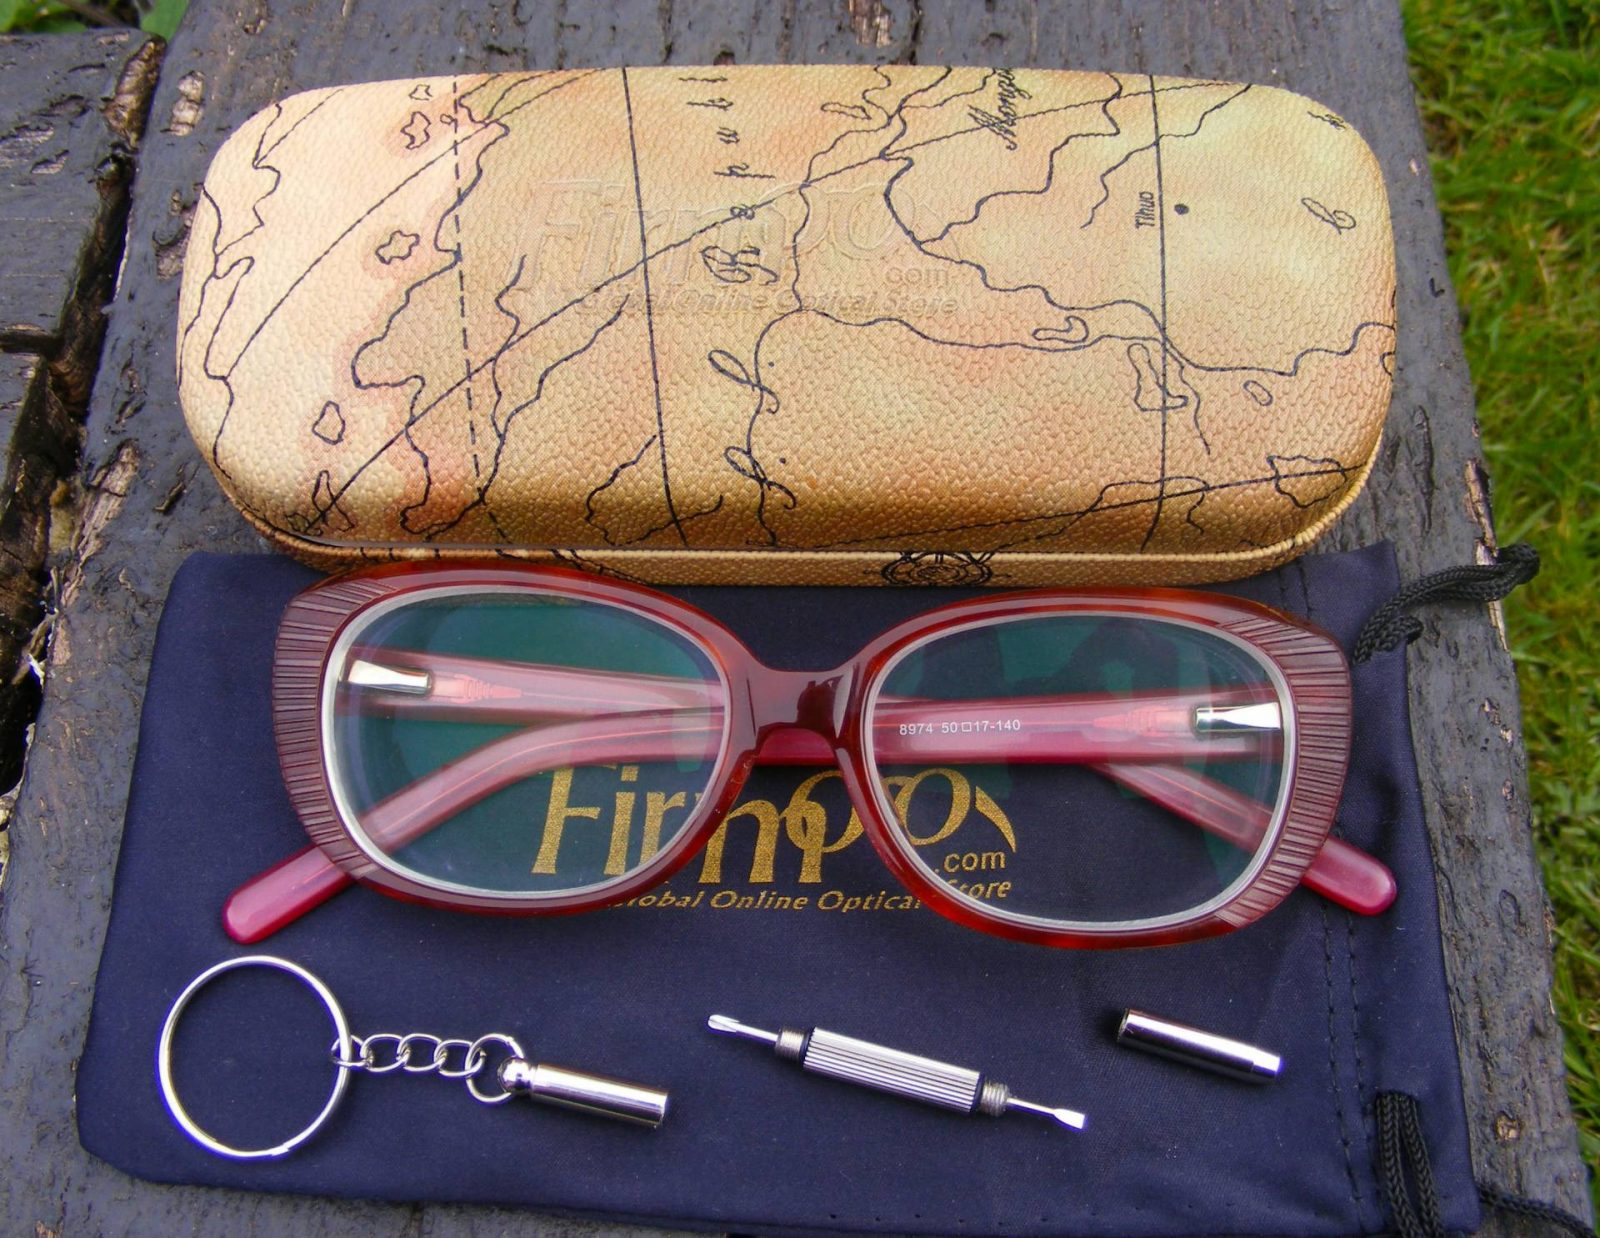 Firmoo glasses and case